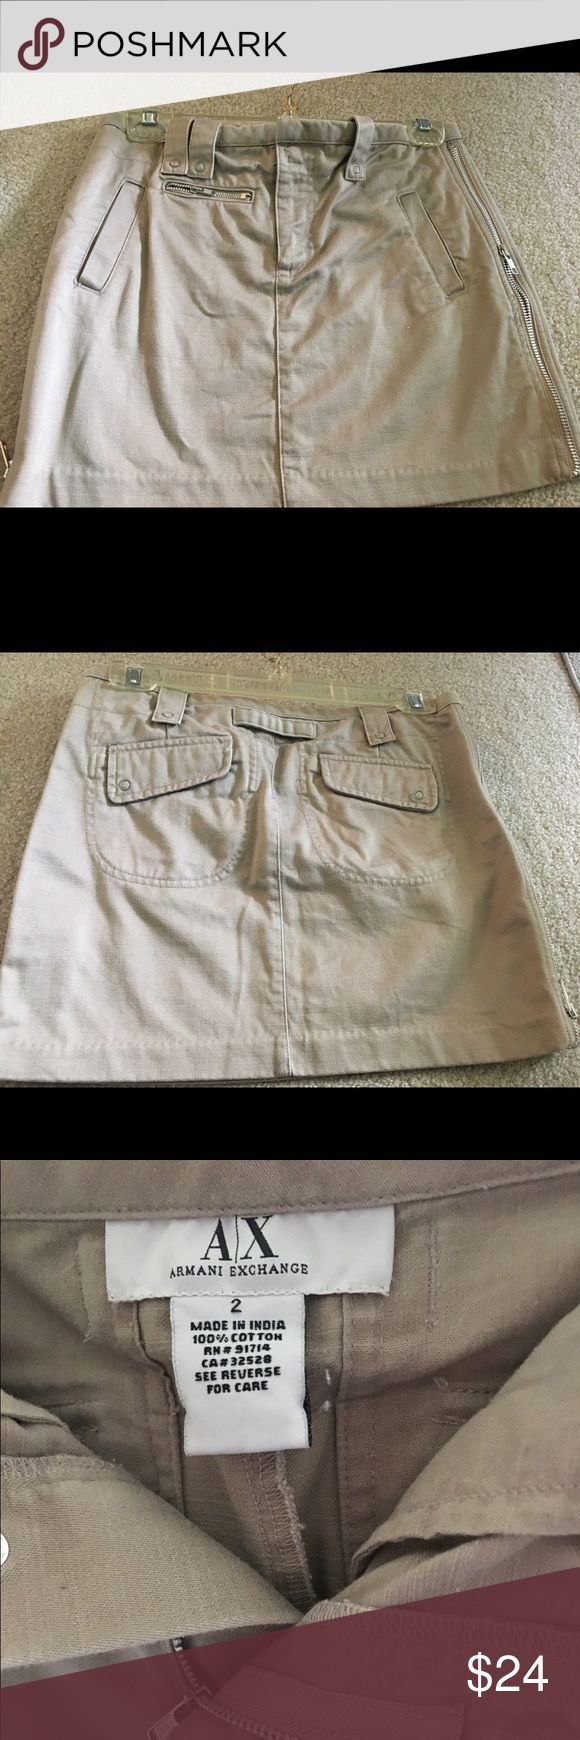 Khaki Armani Exchange Mini Skirt Khaki mini skirt by Armani Exchange. Only wore once. Doesn't fit anymore. Front slit pockets. Zip up front. 2 back pockets. Super cute. Size 2. A/X Armani Exchange Skirts Mini